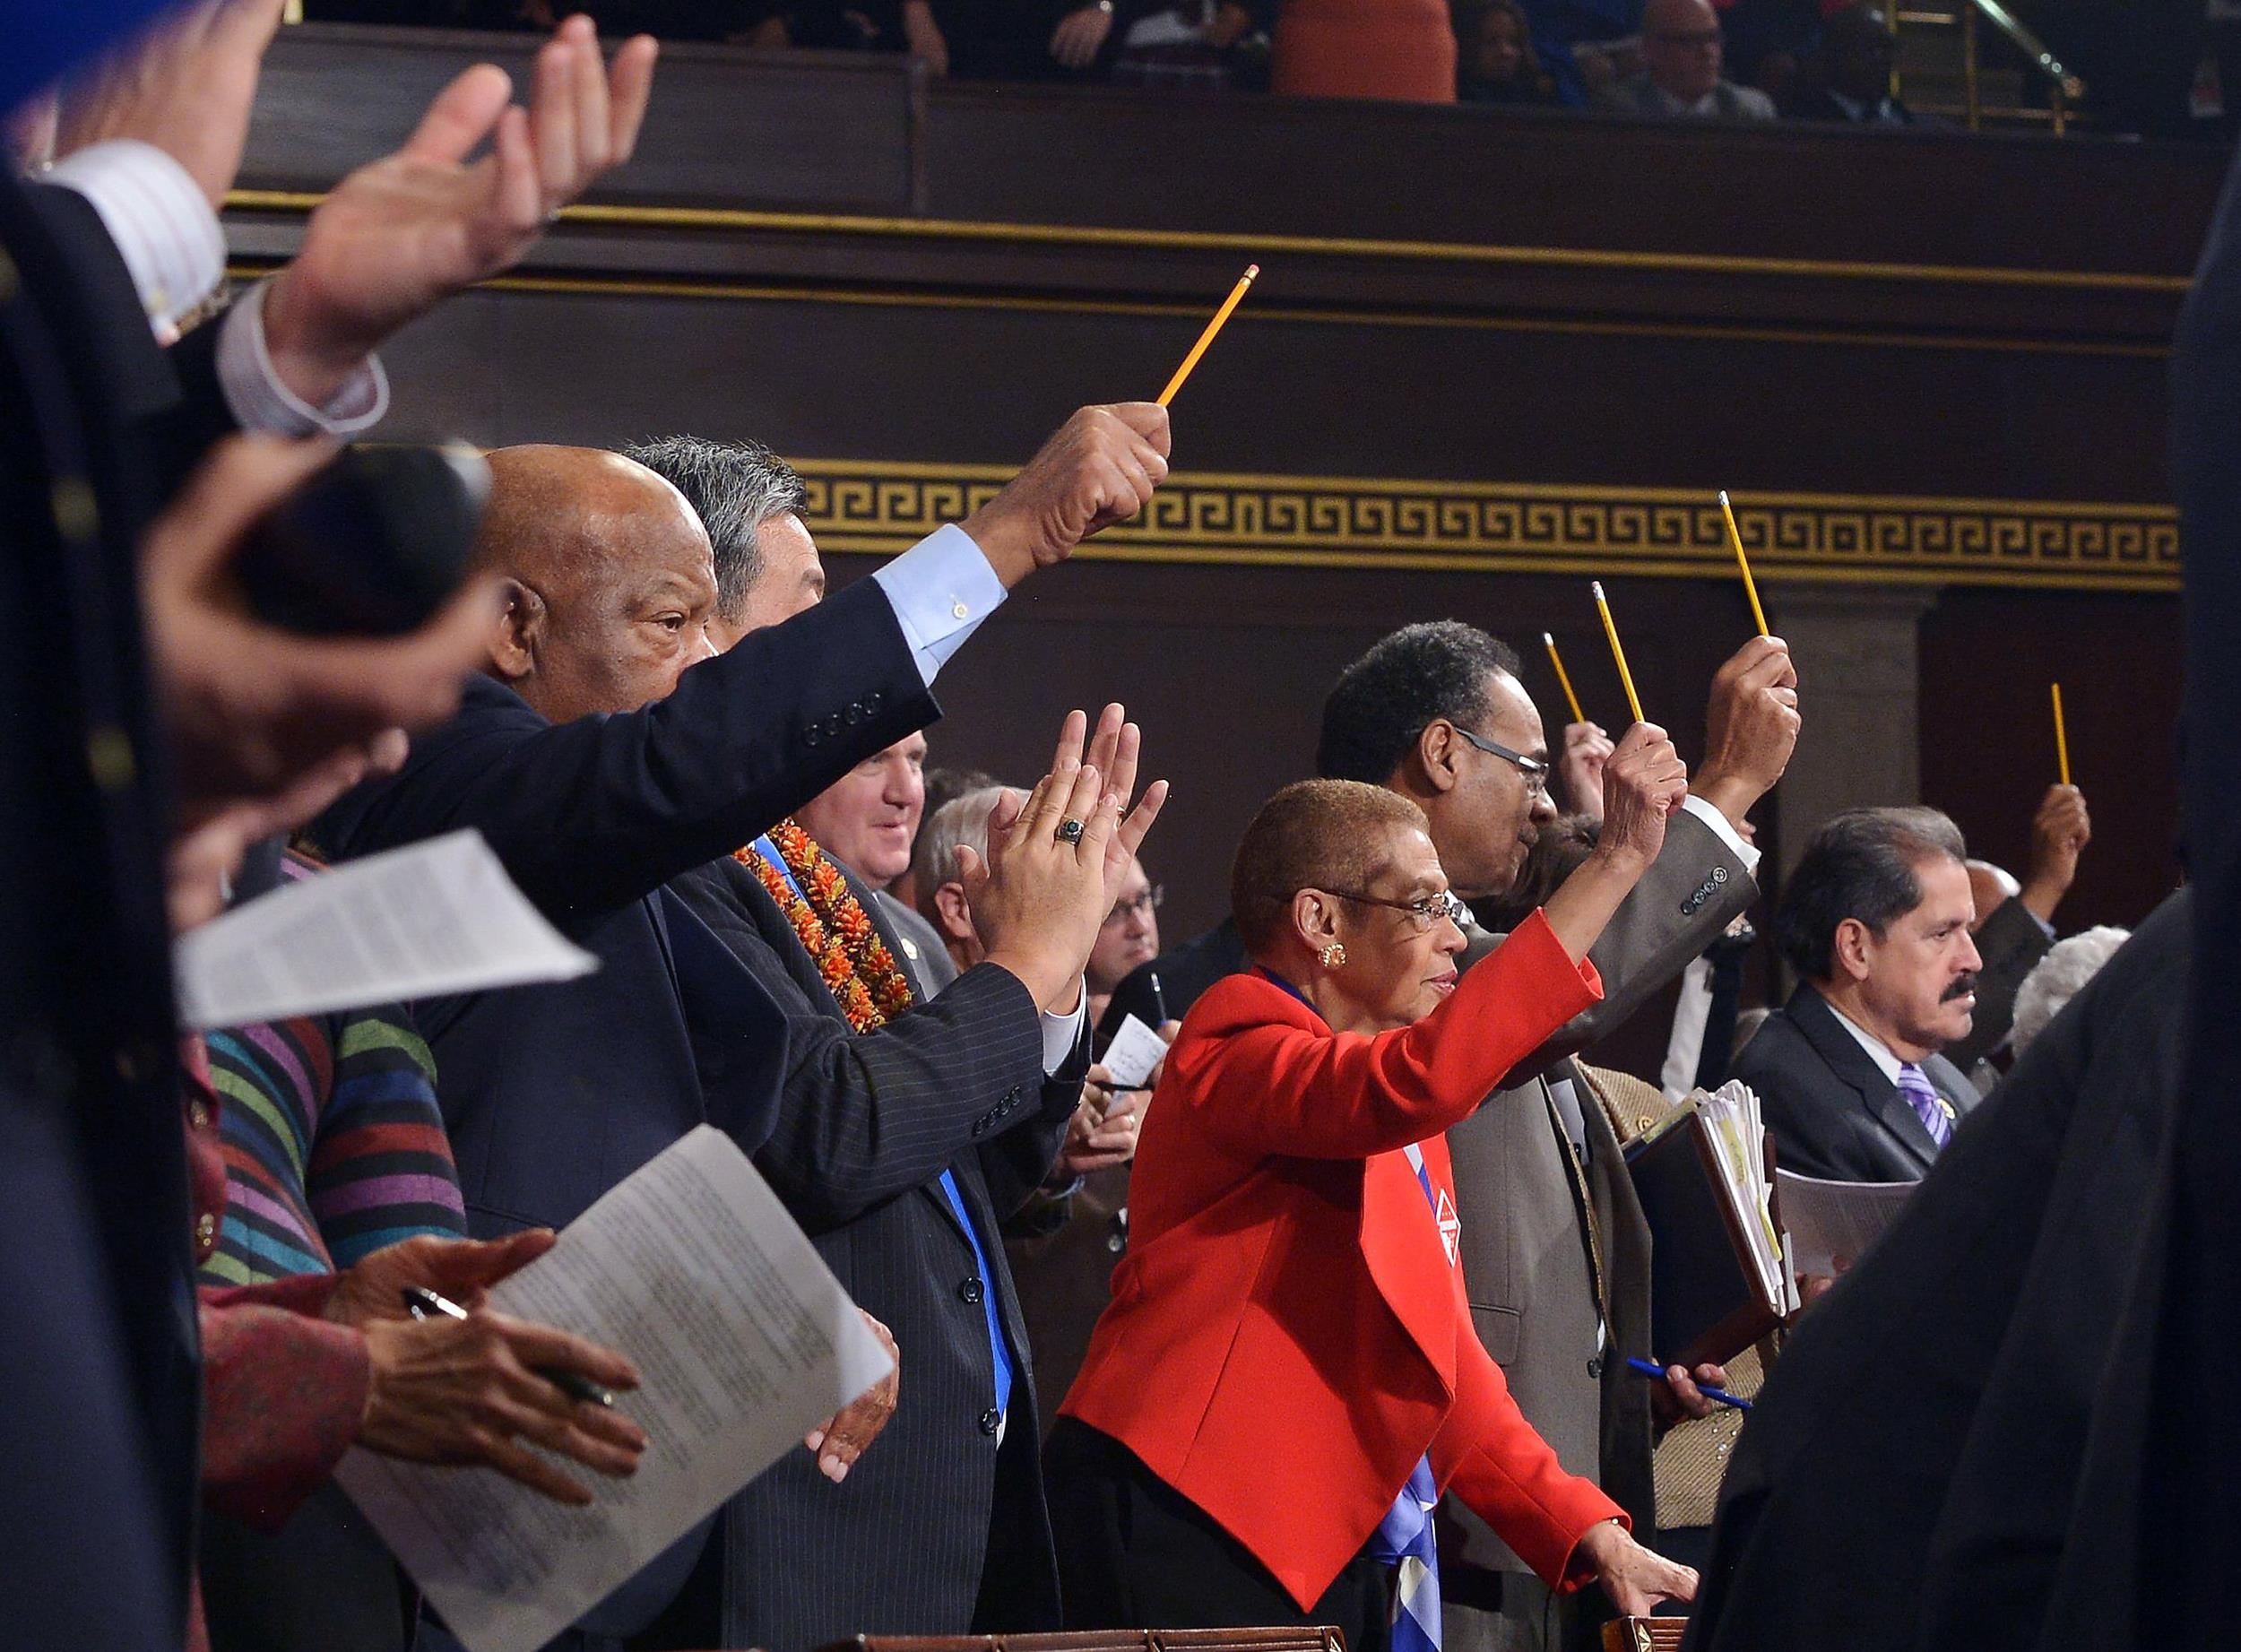 2008 01 31 the libertarian party s response to the state of the union address feed - Of Course There Is One Way You Can Say You Re A Moron With Even Clearer Distinction And That Is While You Re Dutifully Waving Around Your Stupid Pencil